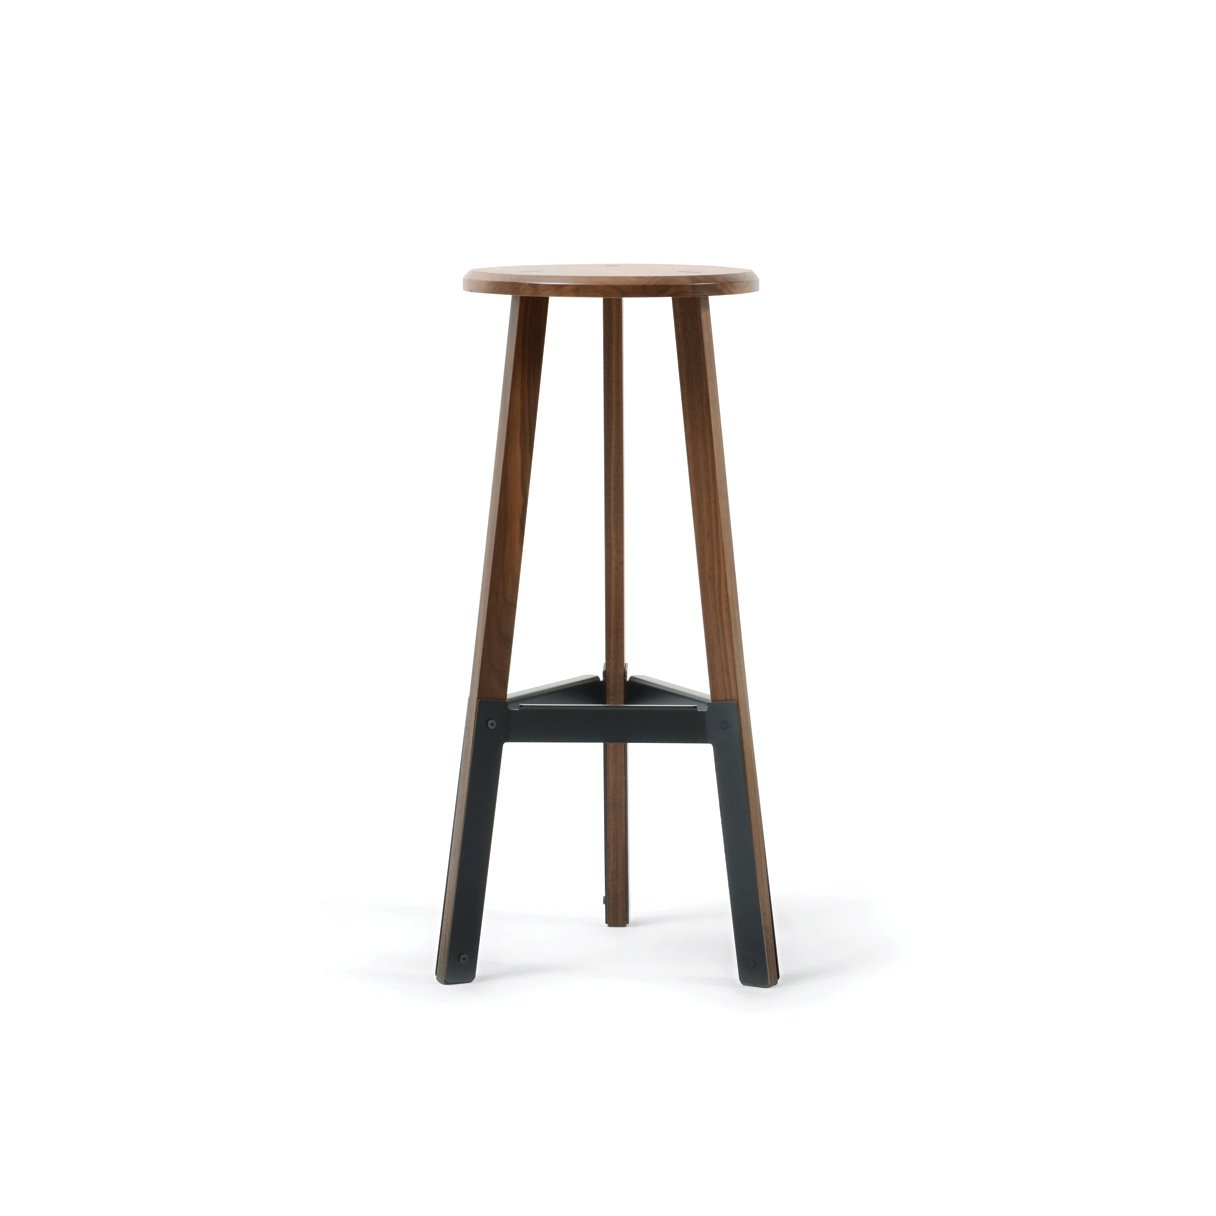 #seatingdesign #seating #chair #stool #furniture #design #mortise #tenon #recycled #eco #green #Milwaukee #madeinUSA #modern #classic #walnut #PoetStool #Misewell  100+ Best Modern Seating Designs